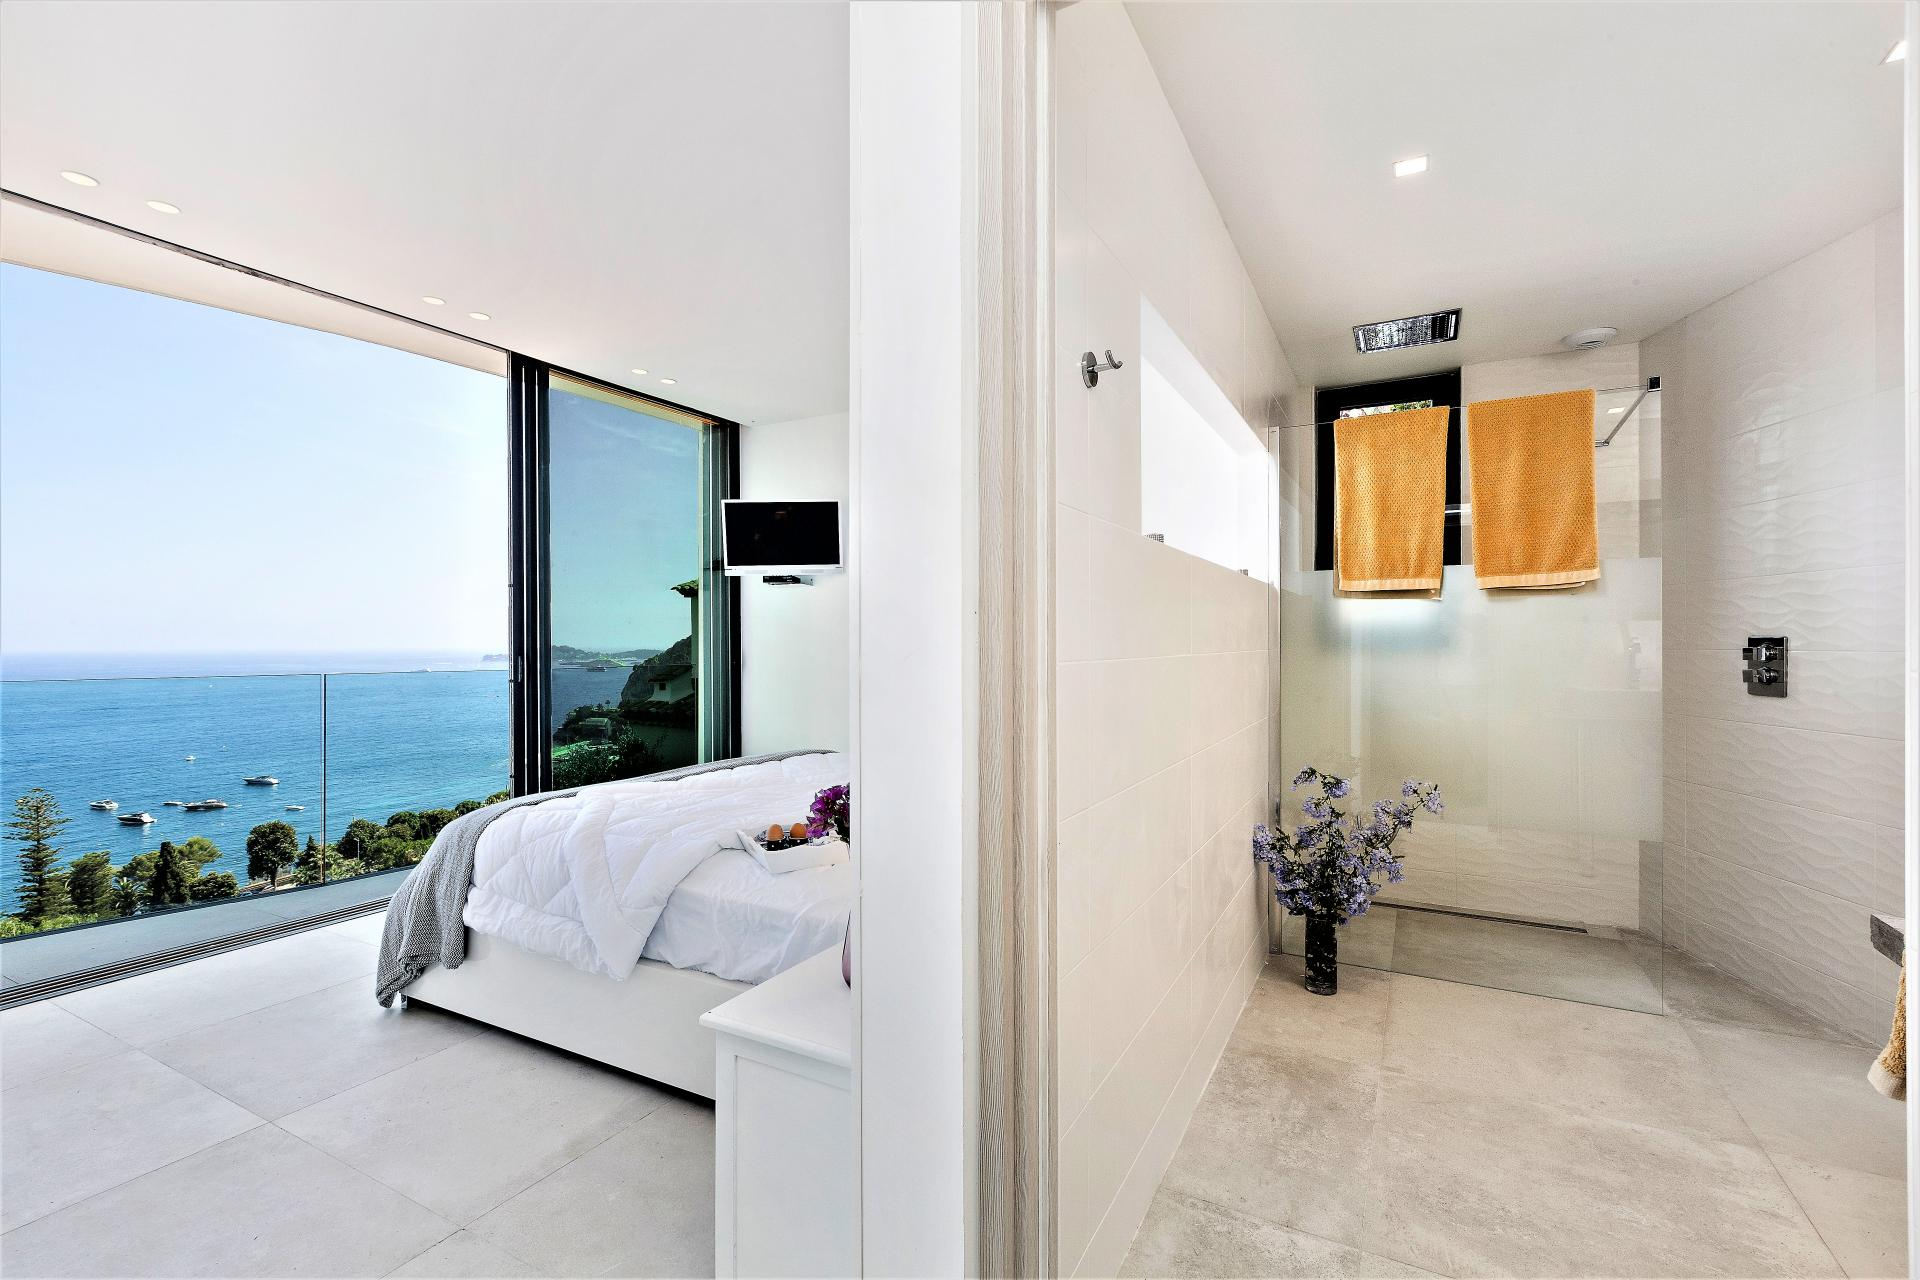 ENSUITE BEDROOM WITH SEA VIEWS IN A VILLA IN COTE D AZUR